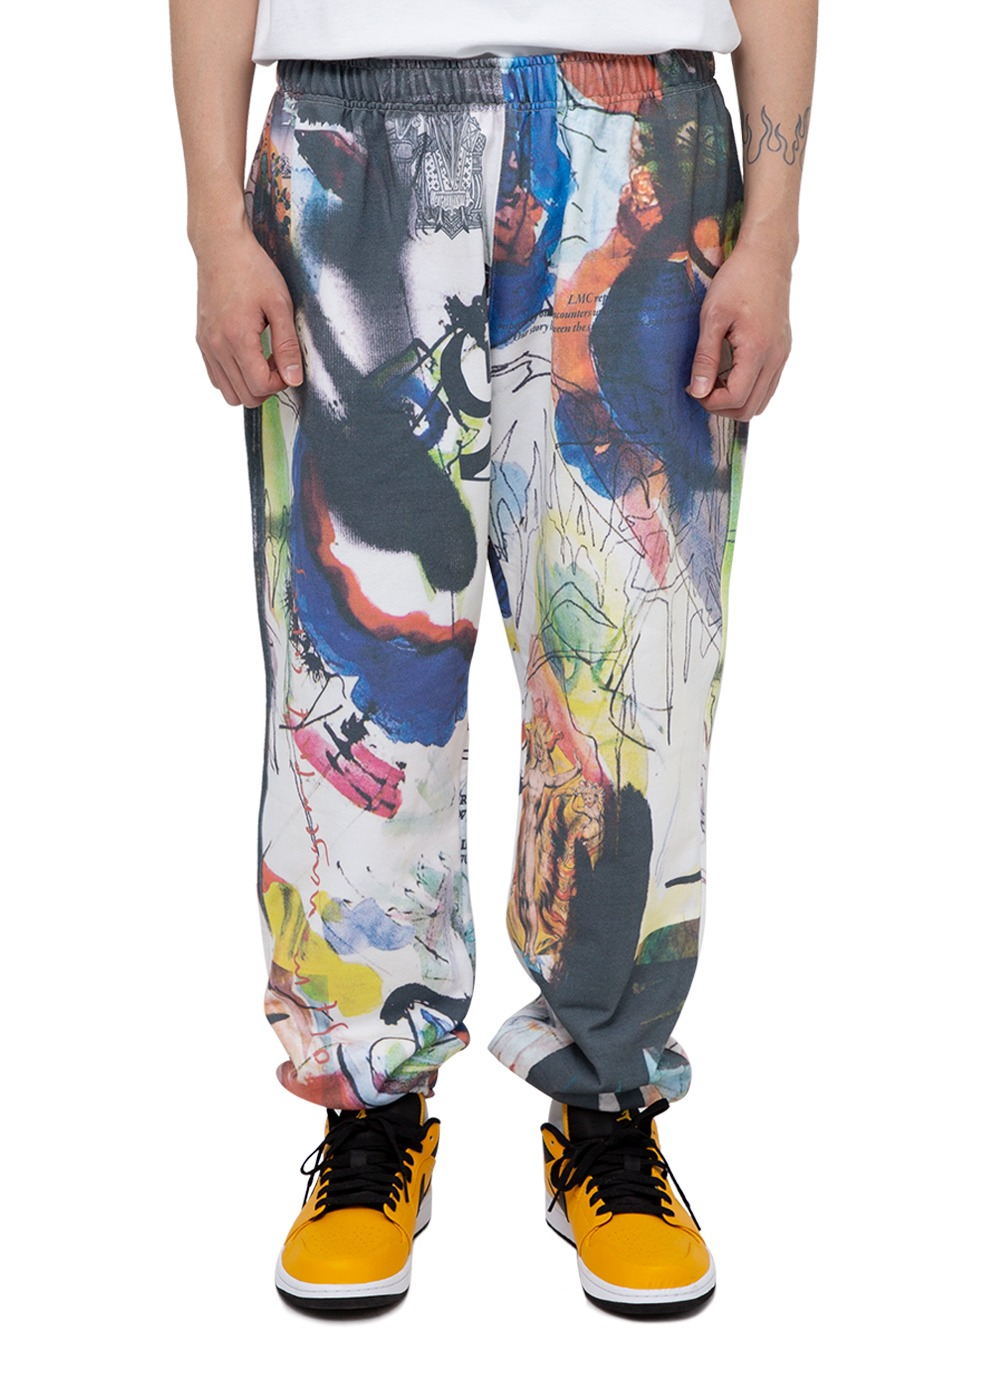 LMC ARTWORKS PAINTING SWEATPANTS multi